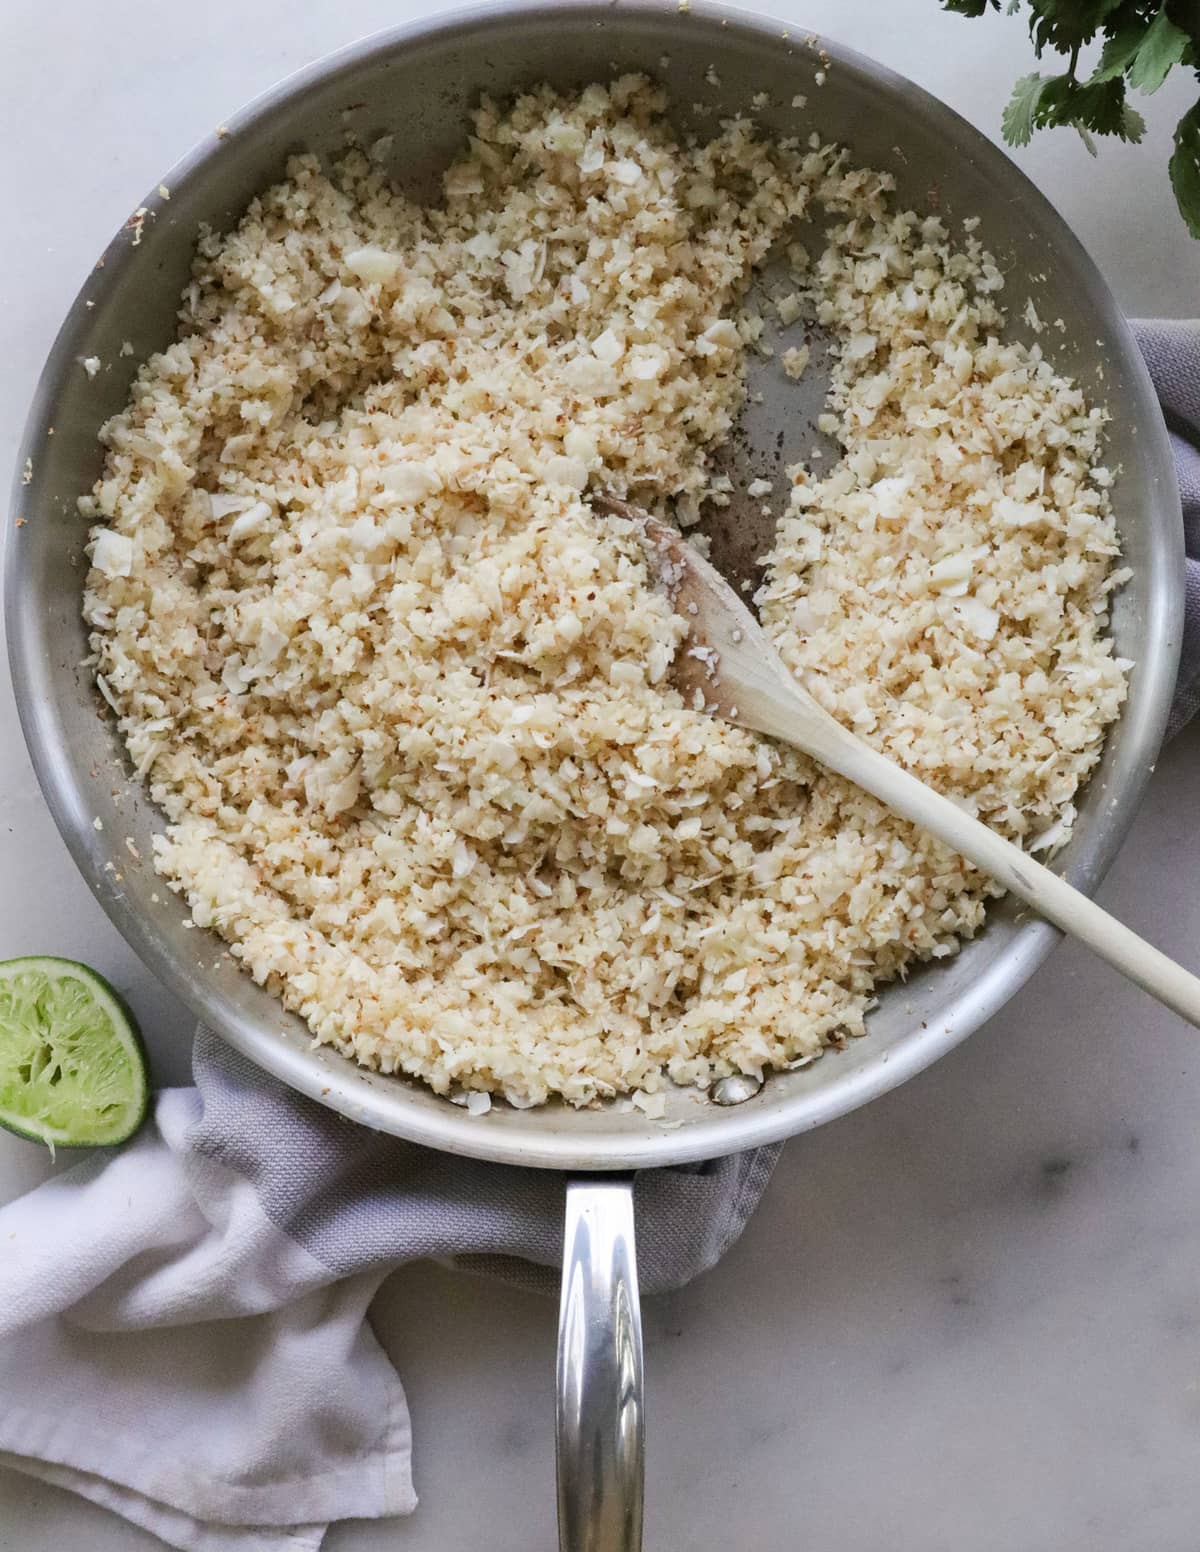 Top down of the cooked cauliflower rice in a skillet with a wooden spoon.